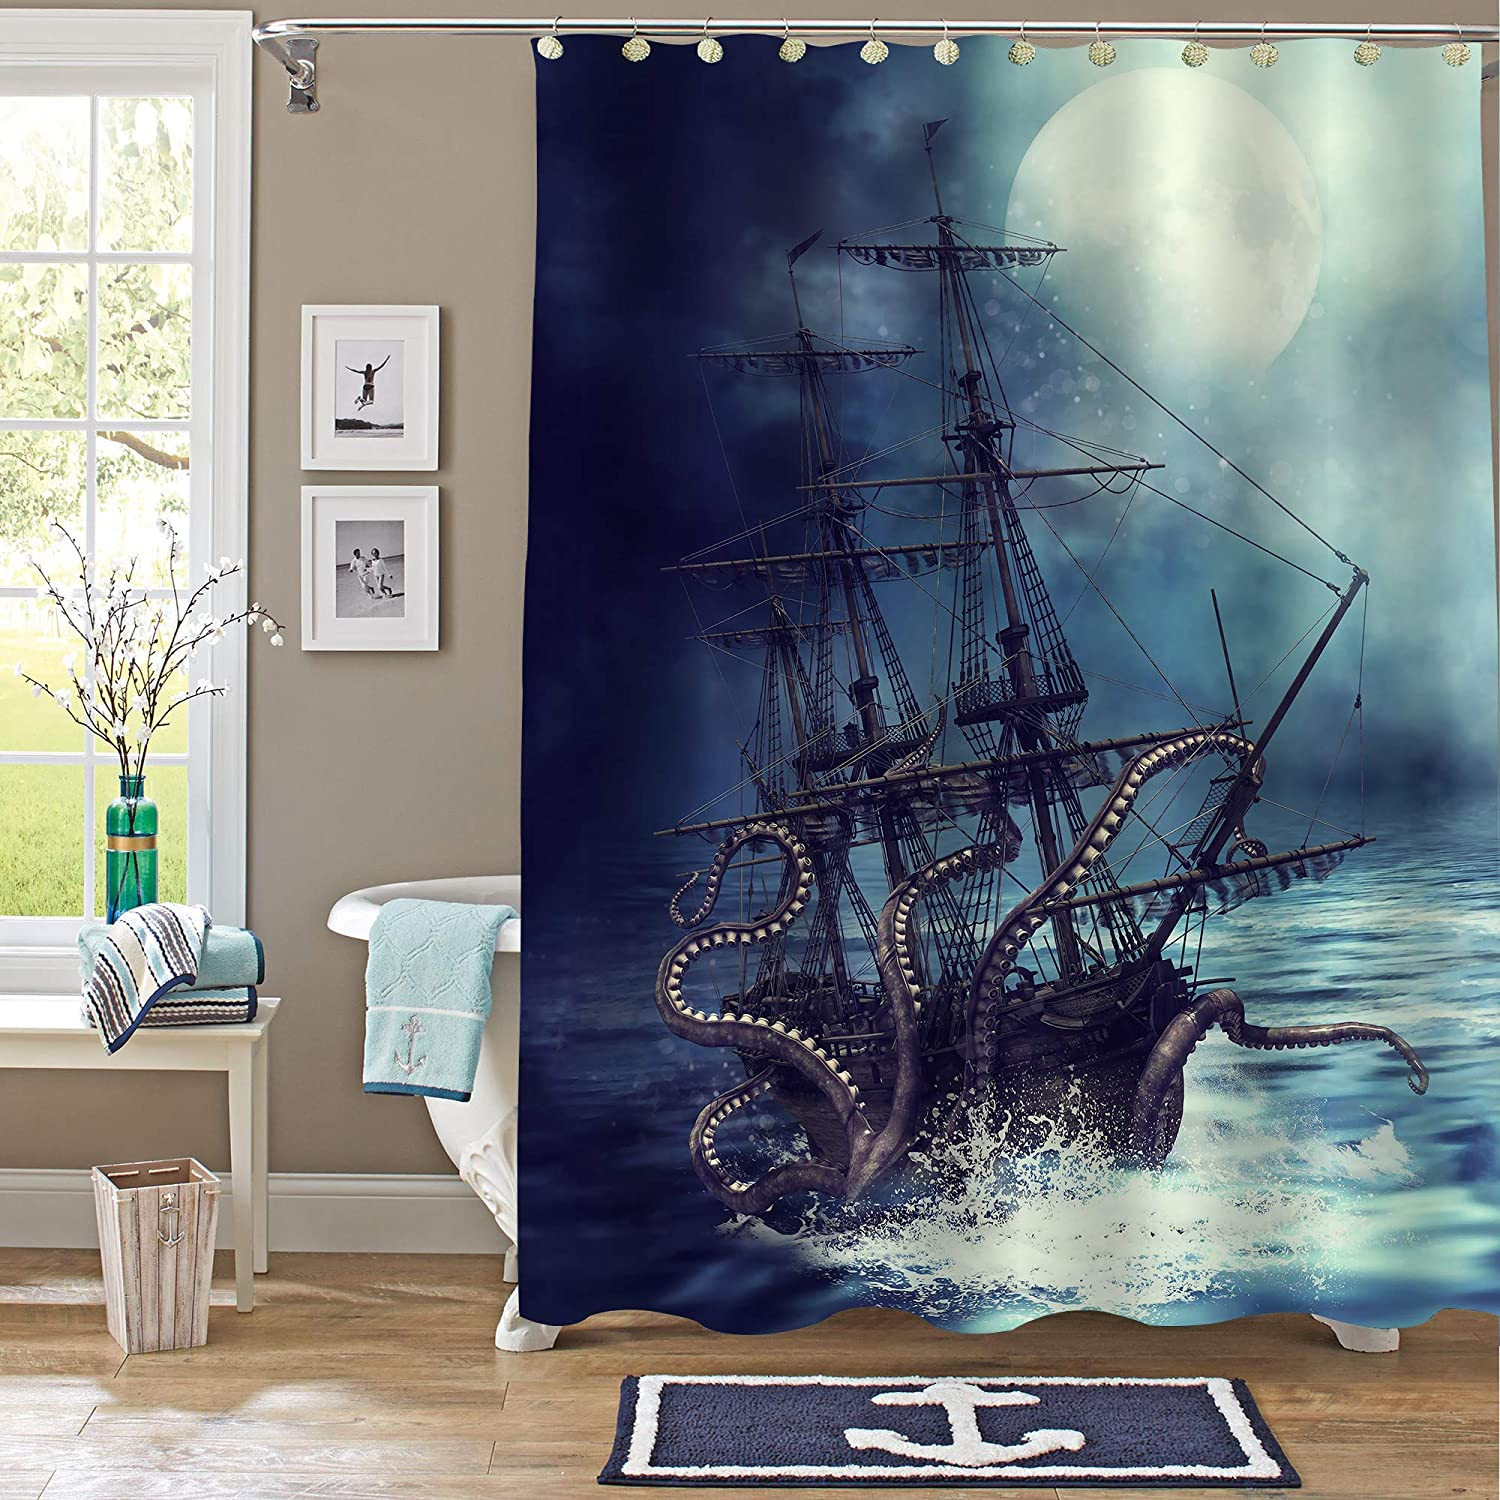 "MitoVilla Nautical Sailboat Shower Curtain Set, Giant Sea Monster Octopus Kraken Attack Pirate Ship Art Print Bathroom Decor for Mens and Boy Ocean Animal Themed Gifts, 72"" W x 72"" L"